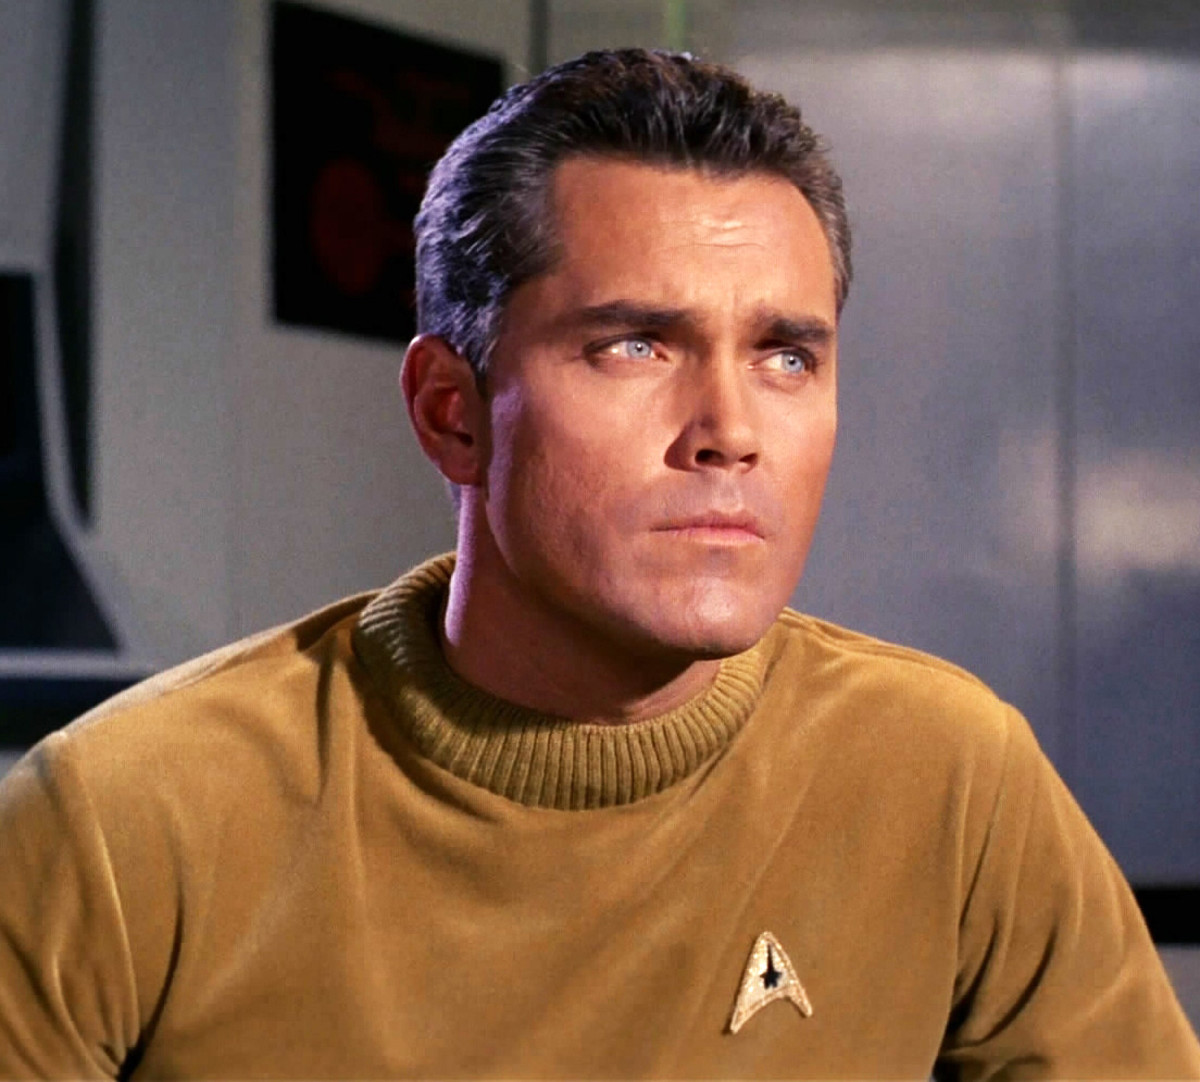 Jeffrey Hunter as Captain Christopher Pike of the Starship Enterprise